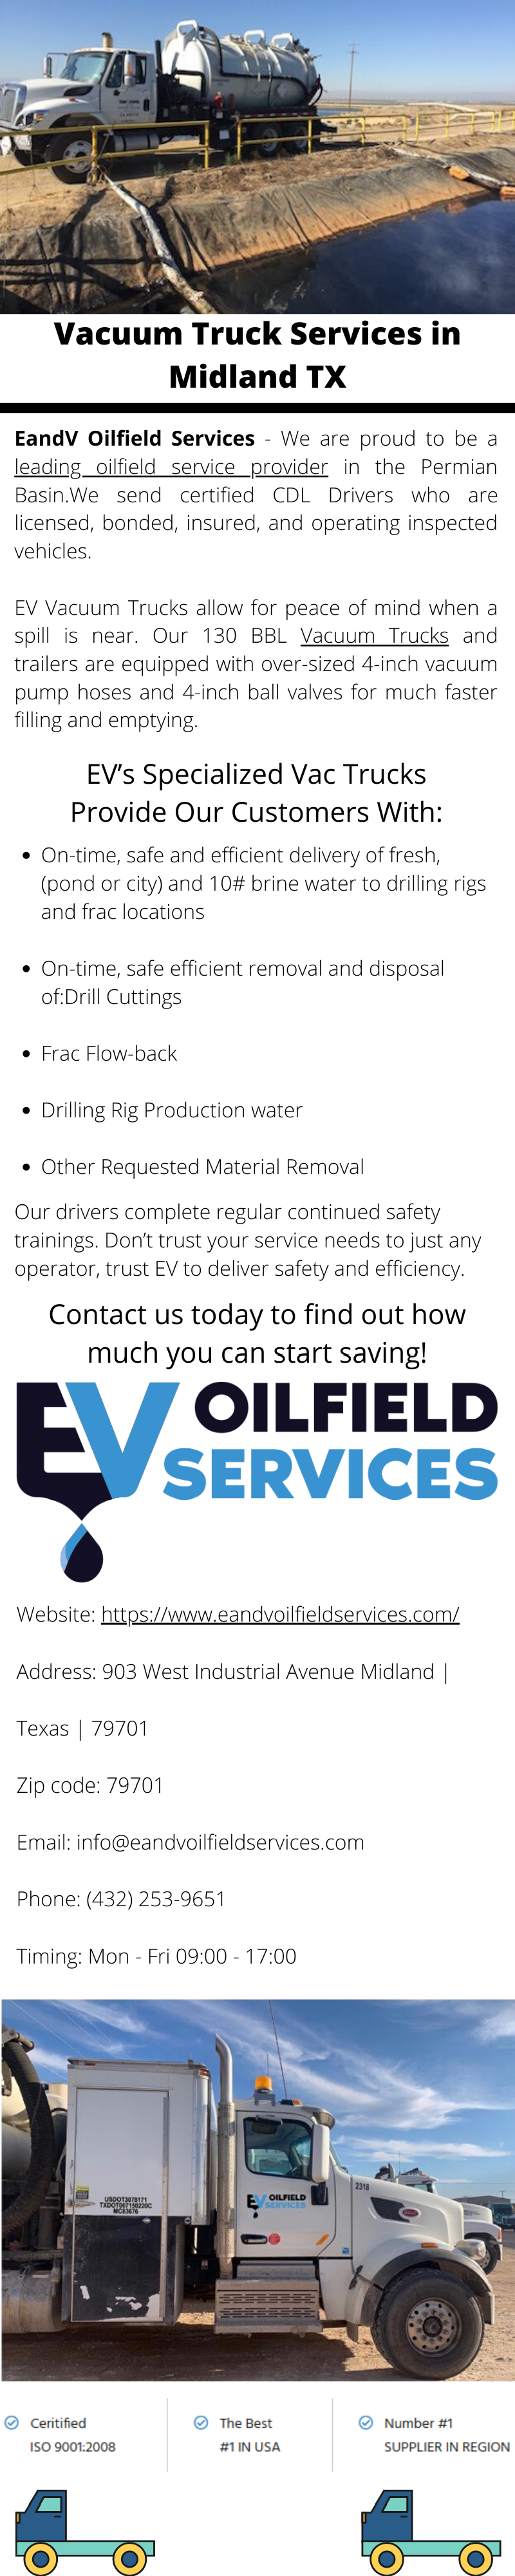 Ev Vacuum Trucks Allow For Peace Of Mind When A Spill Is Near Our 130 Bbl Vacuum Trucks And Trailers Are Equipped With Over Siz In 2020 Midland Texas Oilfield Midland